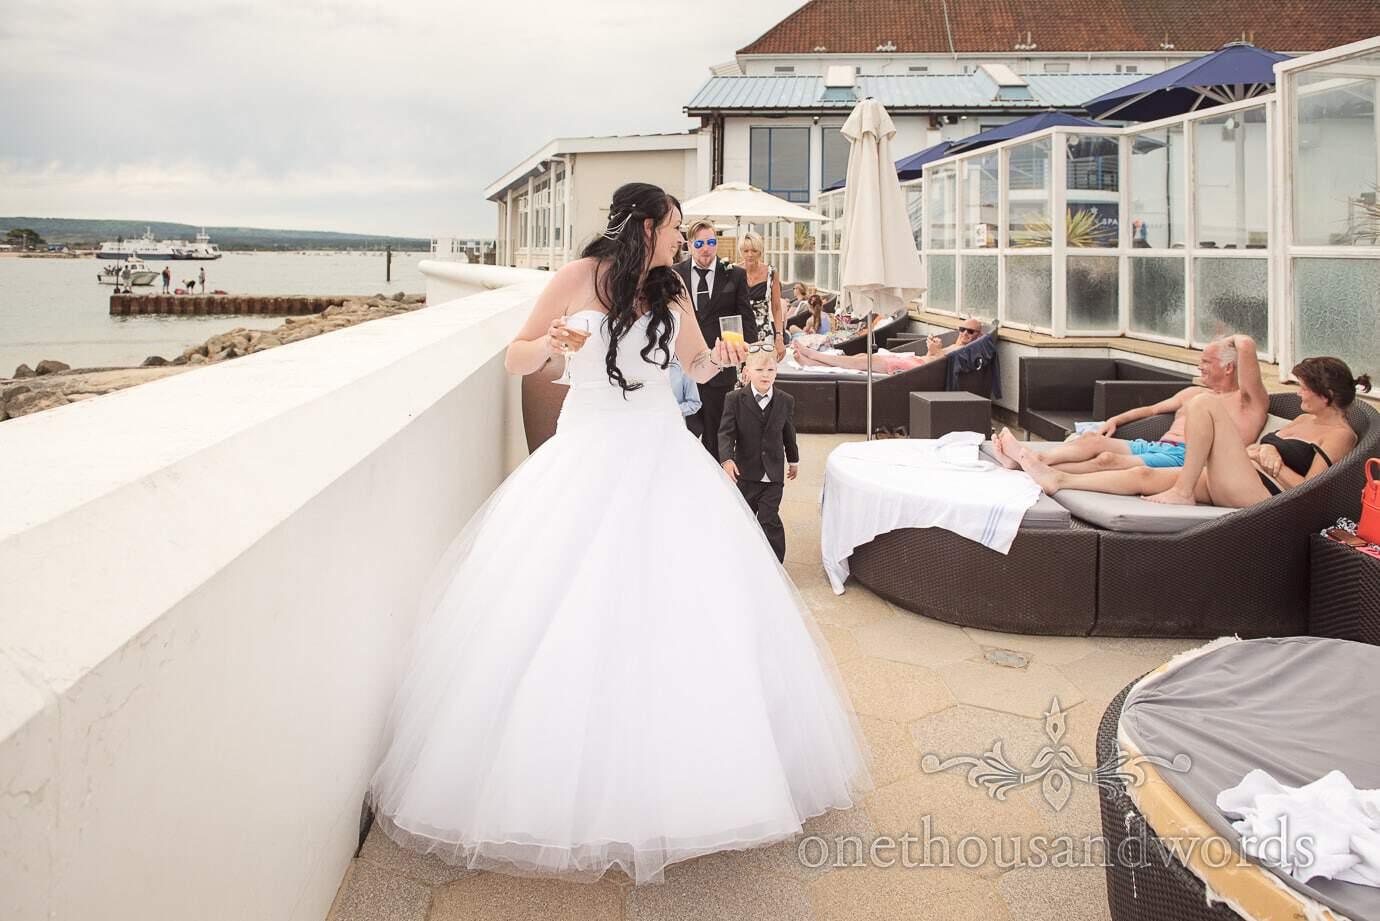 Bride and wedding party walk past Hotel spa guests sunbathing by the sea in Sandbanks